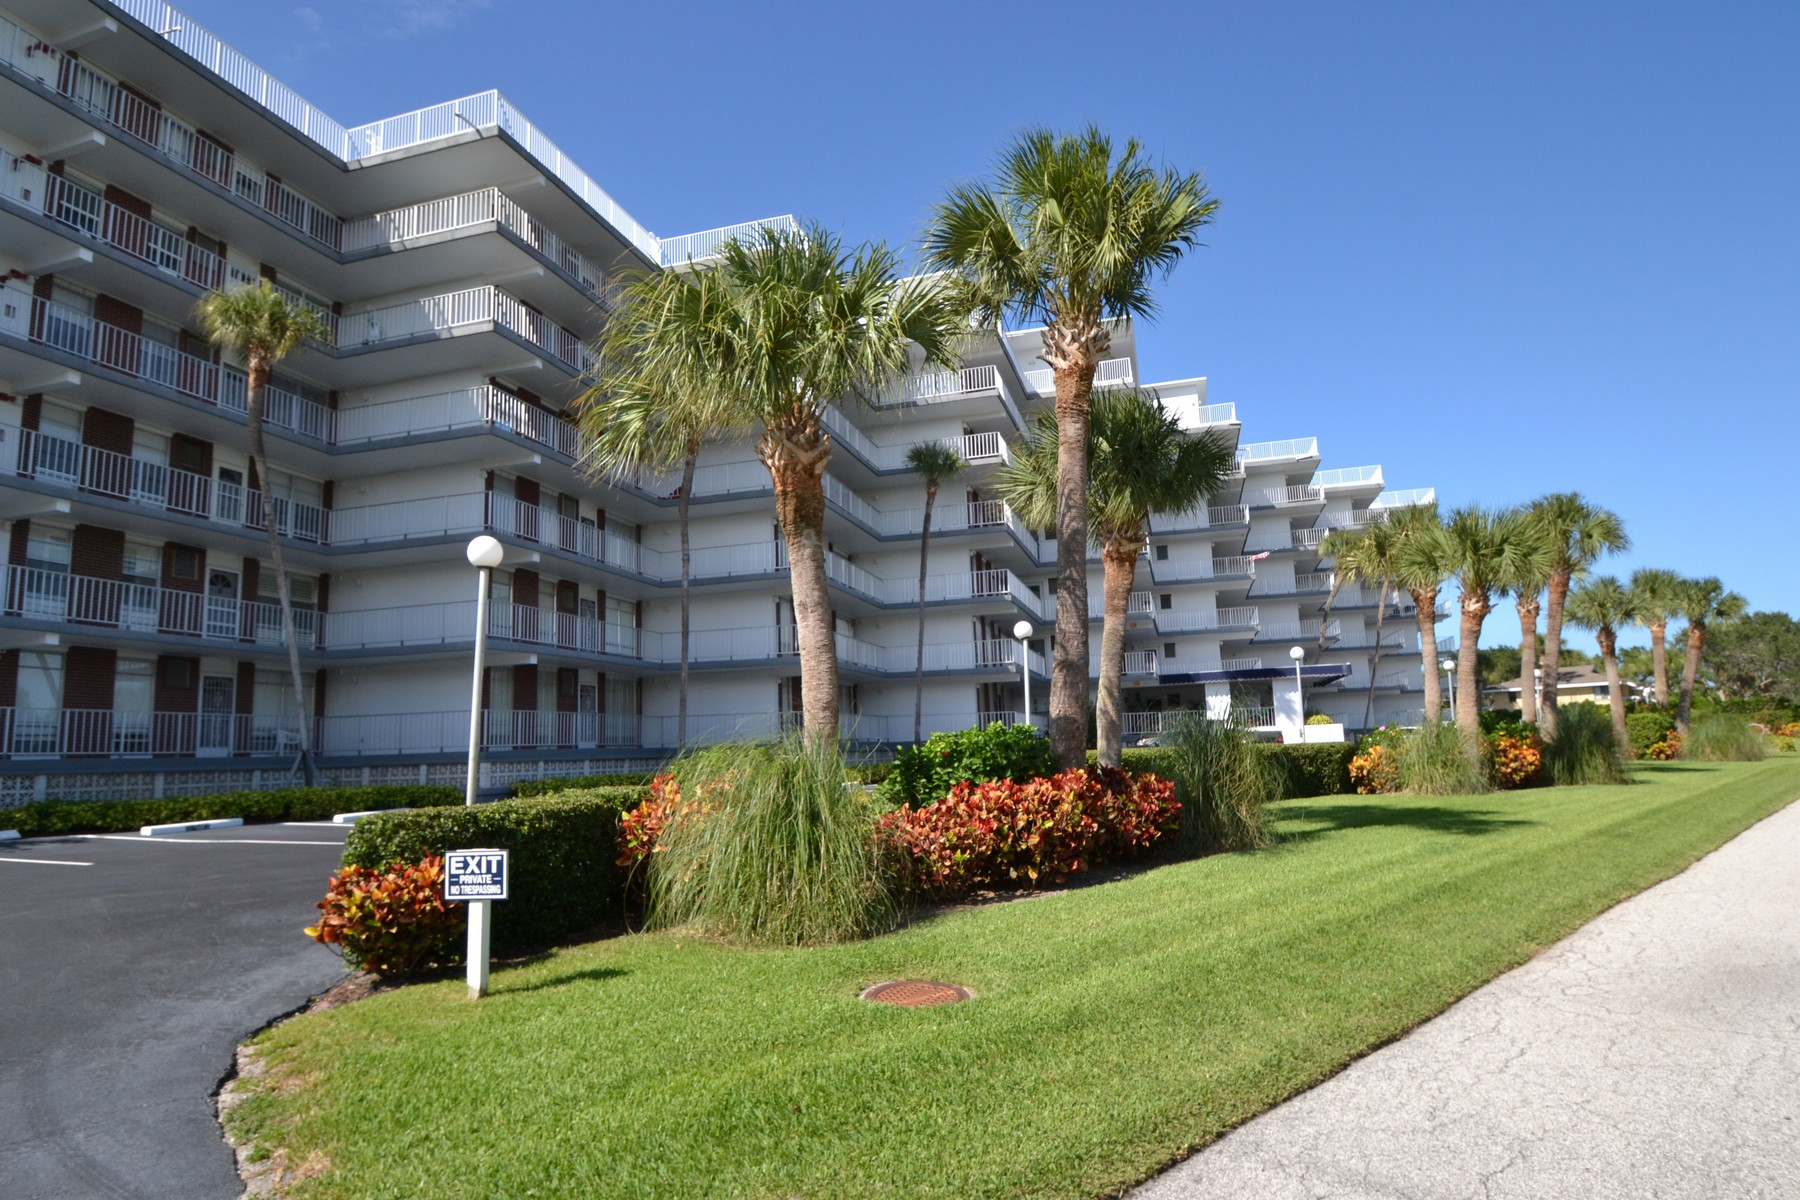 Condominium for Sale at Lovely Condo One Half Block to the Beach! 935 E Causeway Boulevard #205 Vero Beach, Florida 32963 United States